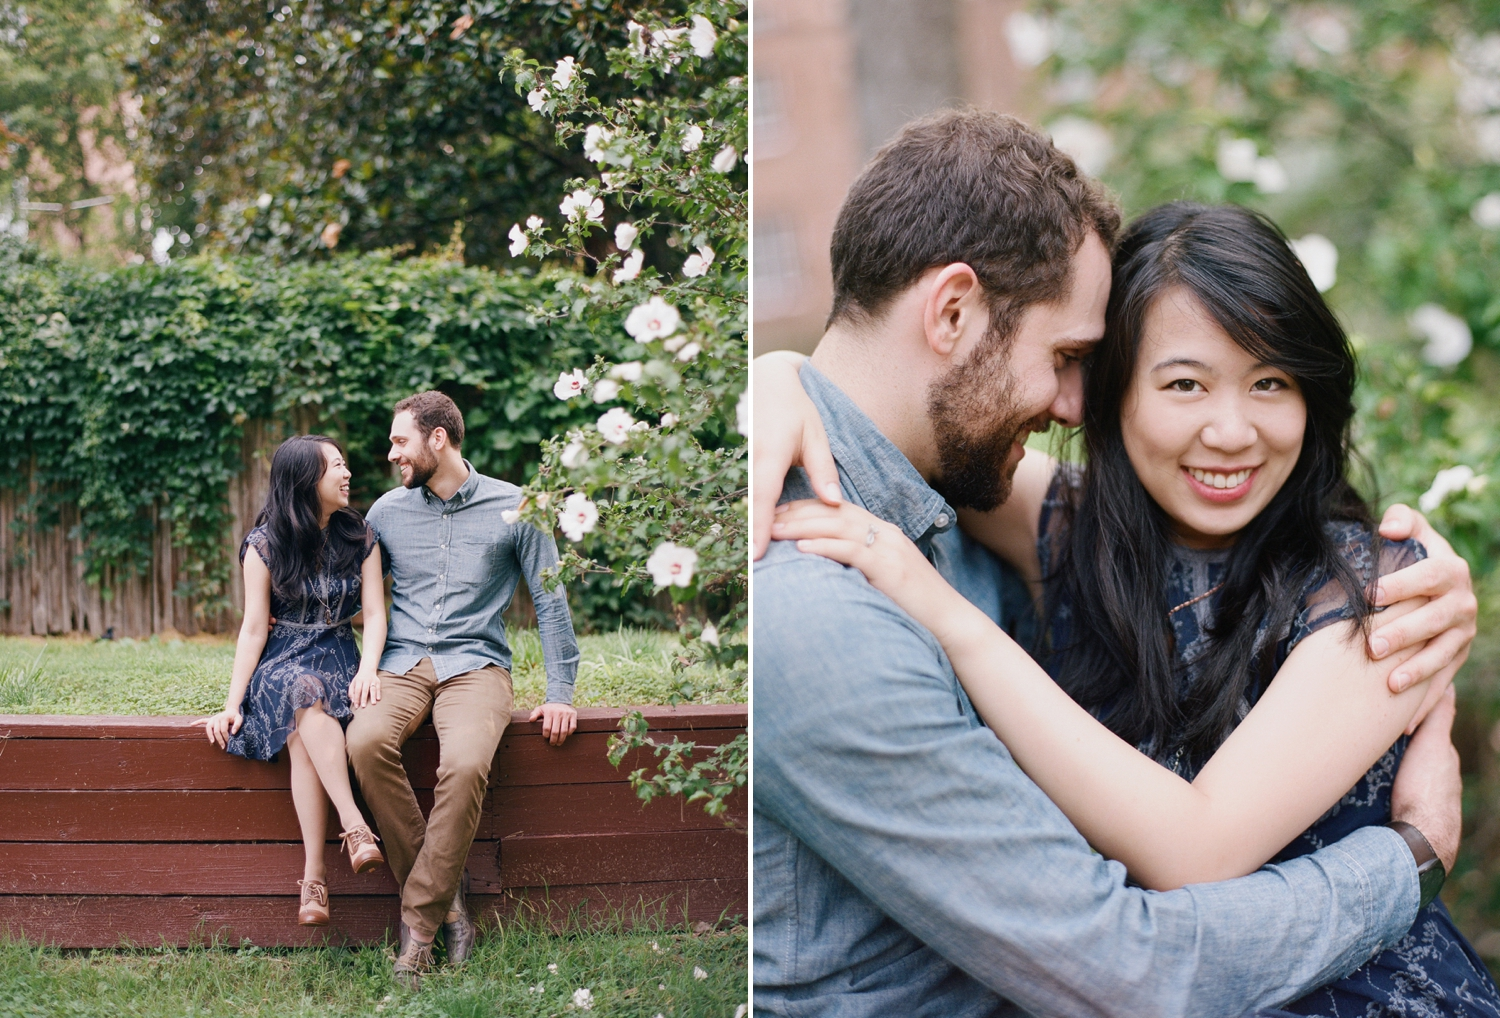 Washington DC engagement photographer on film, Audra Wrisley